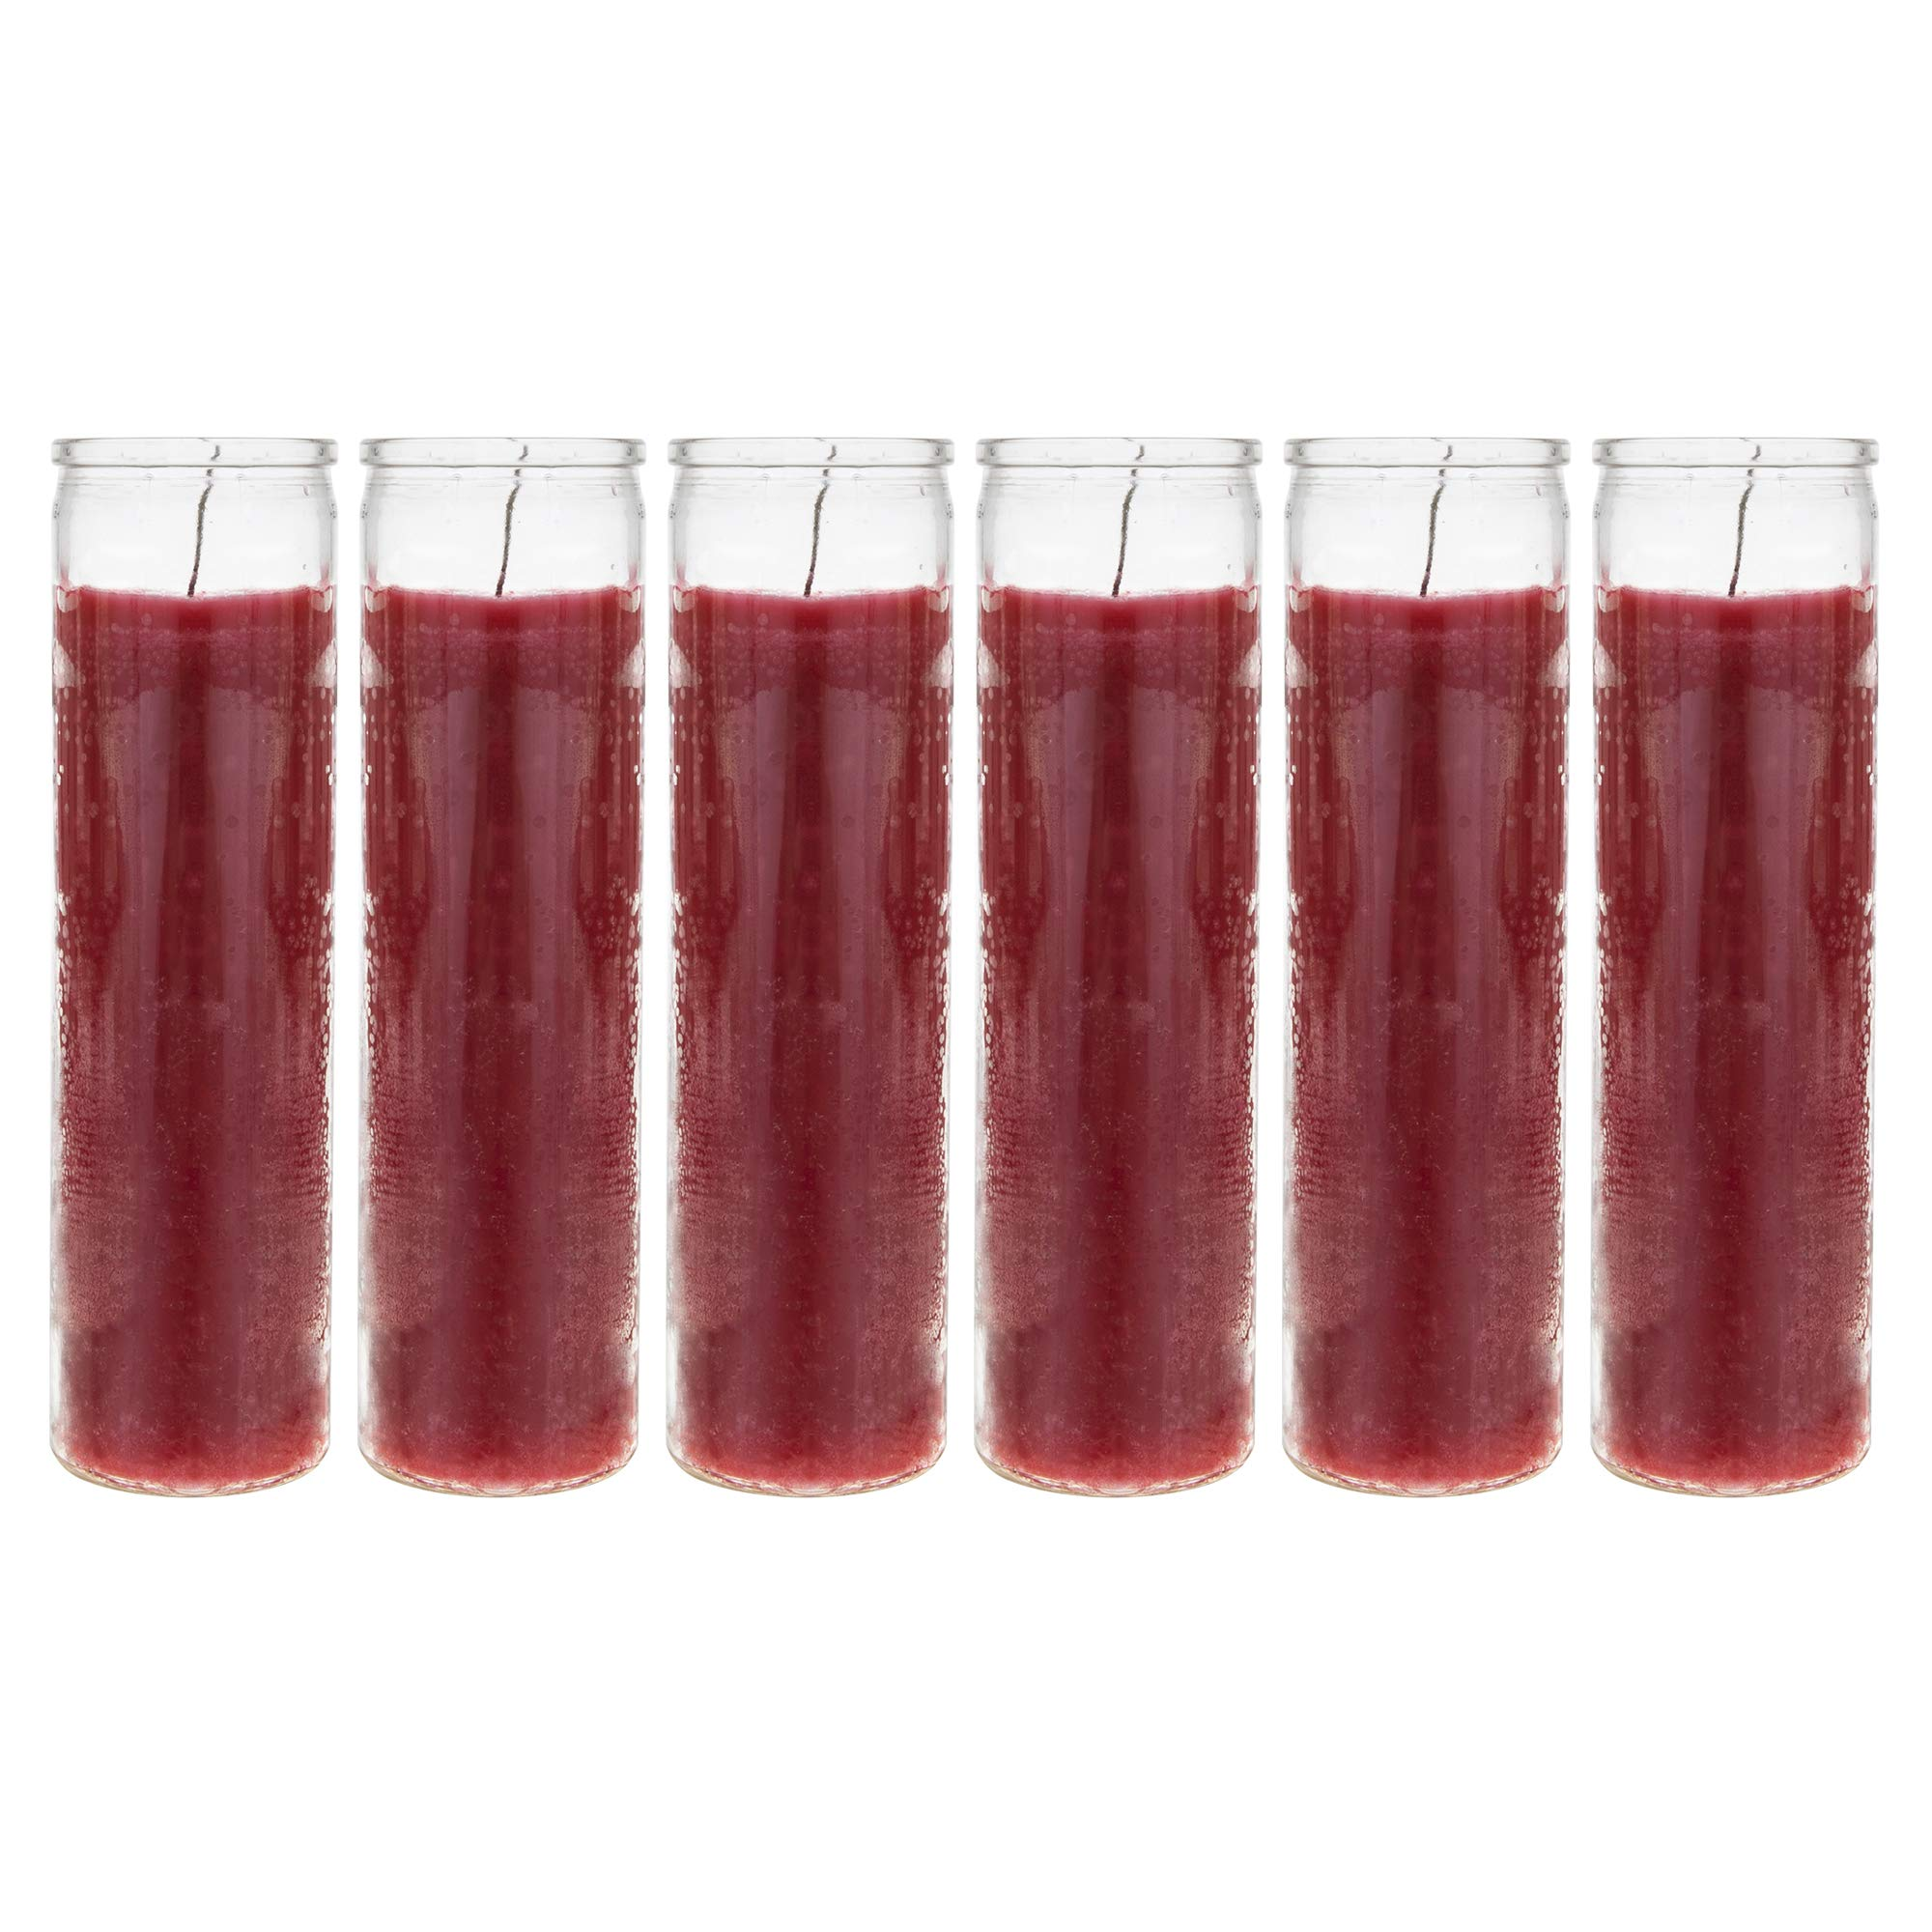 Mega Candles 6 pcs Unscented Red 7 Day Devotional Prayer Glass Container Candle | Premium Wax Candles 2'' x 8'' | Great for Sanctuary, Vigils, Prayers, Blessing, Religious & Much More!